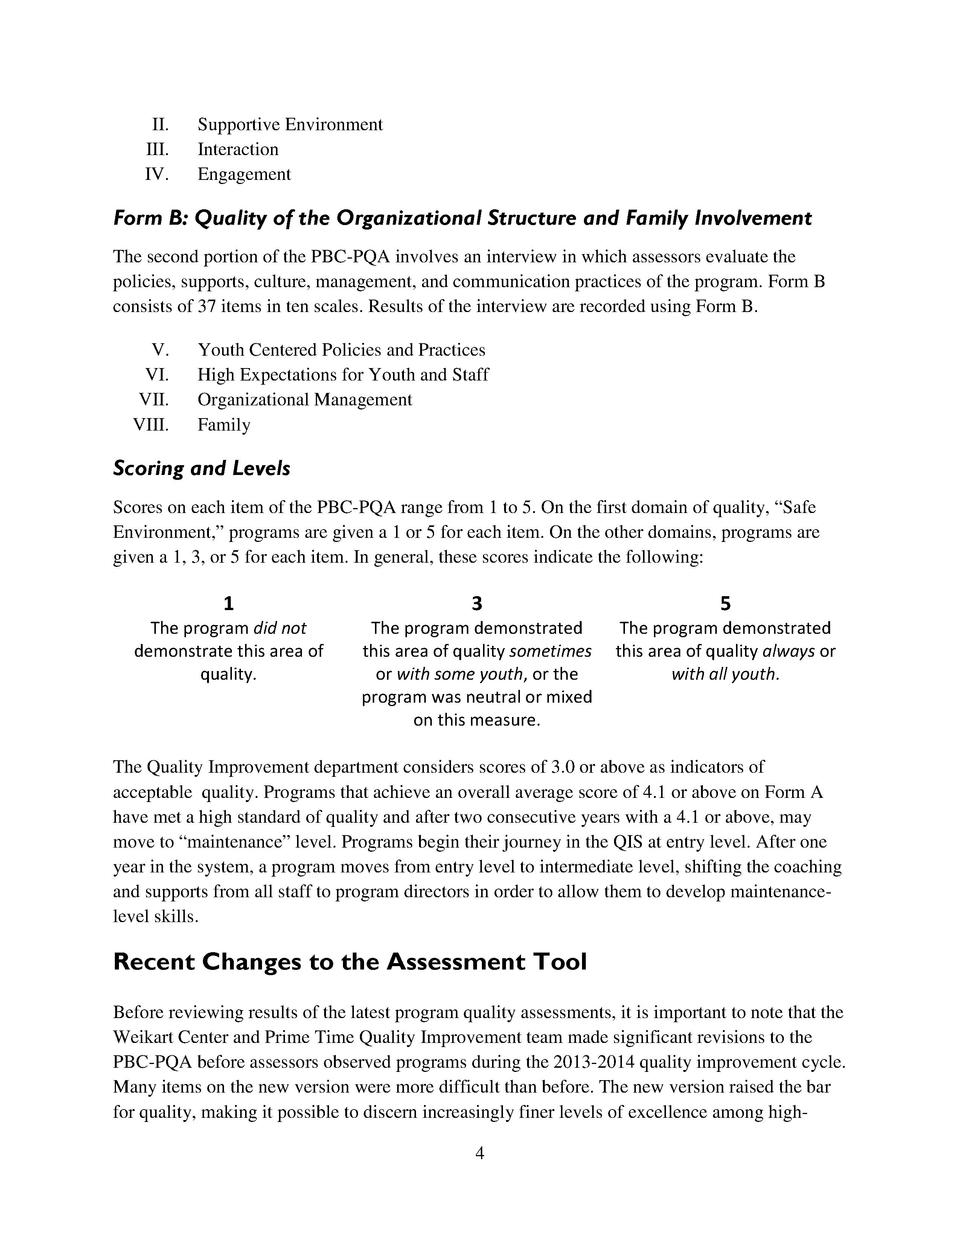 II. III. IV.  Supportive Environment Interaction Engagement  Form B  Quality of the Organizational Structure and Family In...